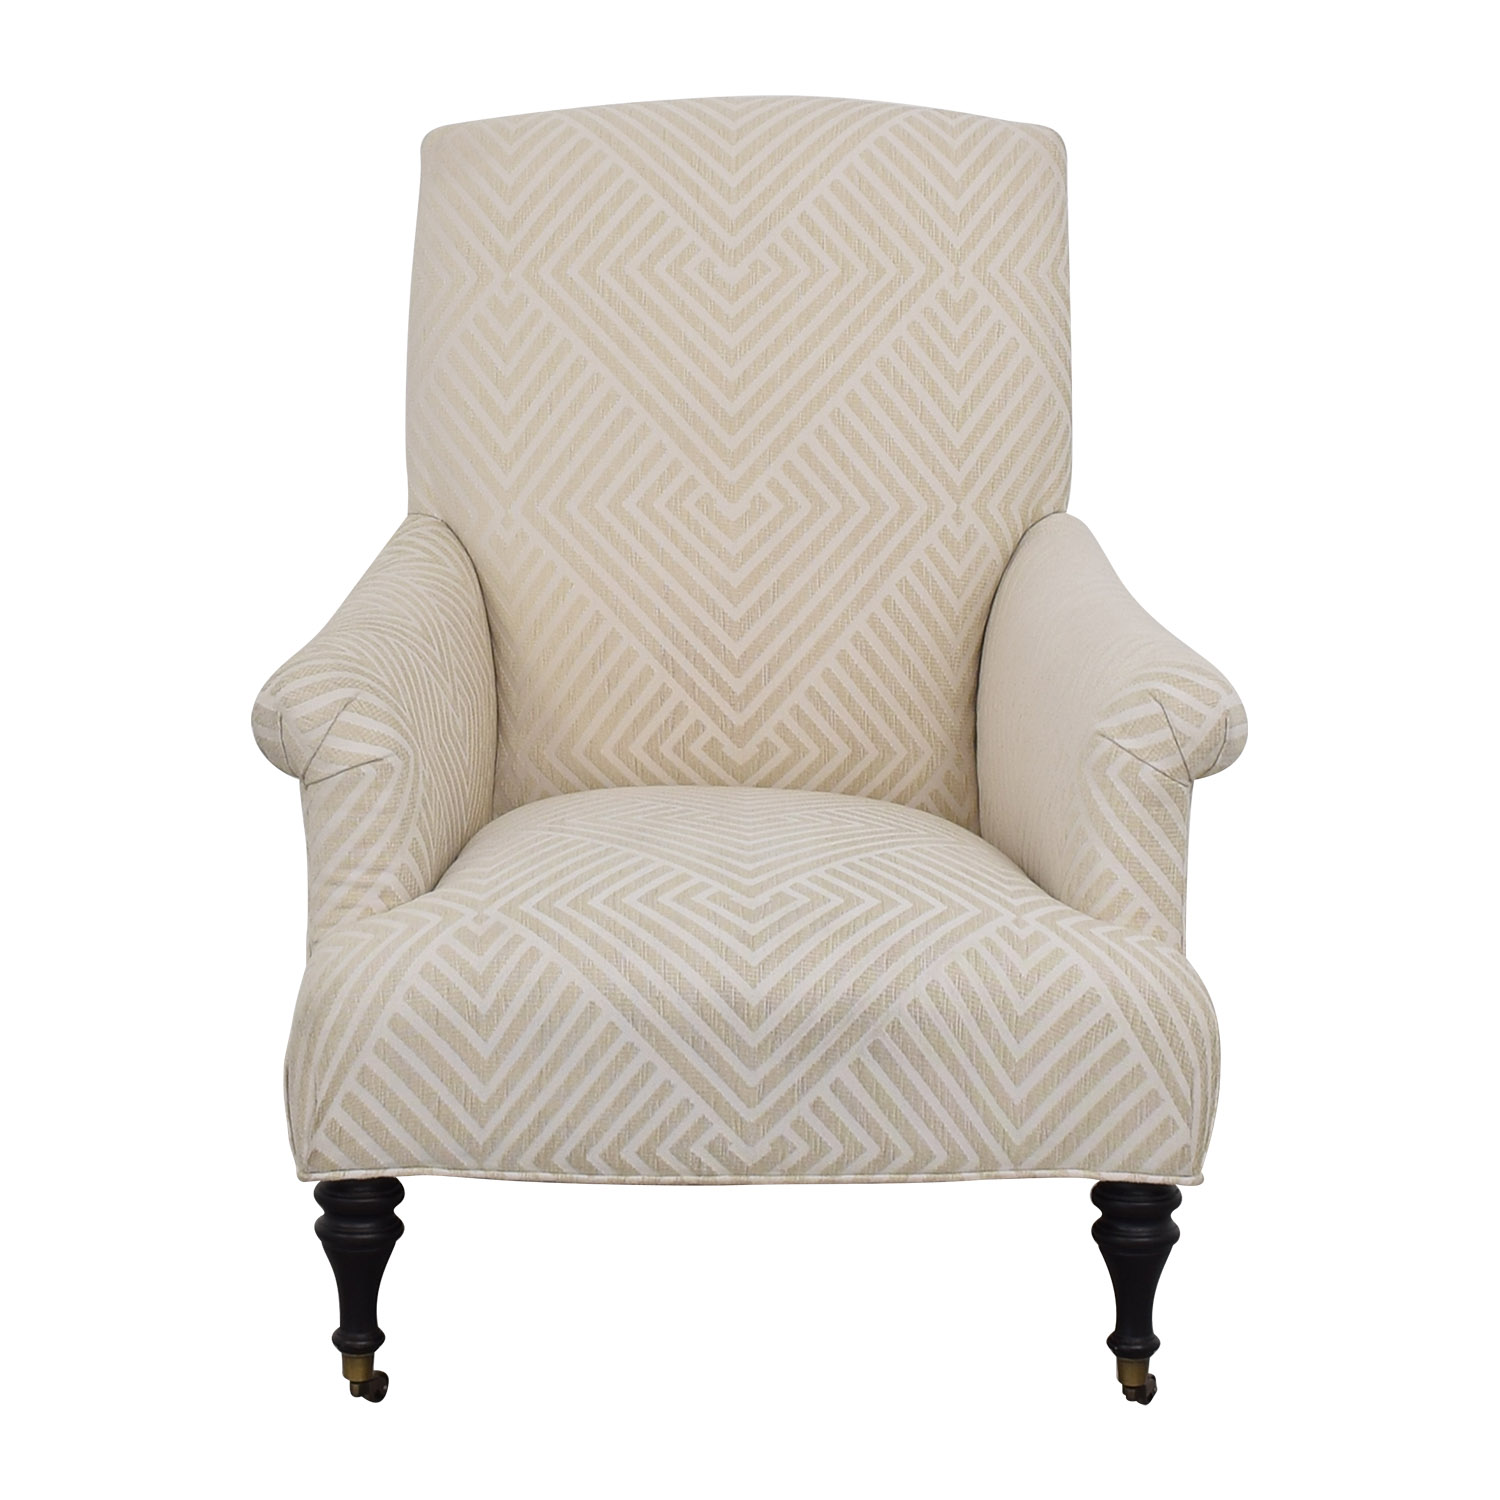 Mitchell Gold + Bob Williams Mitchell Gold + Bob Williams Upholstered Armchair nj